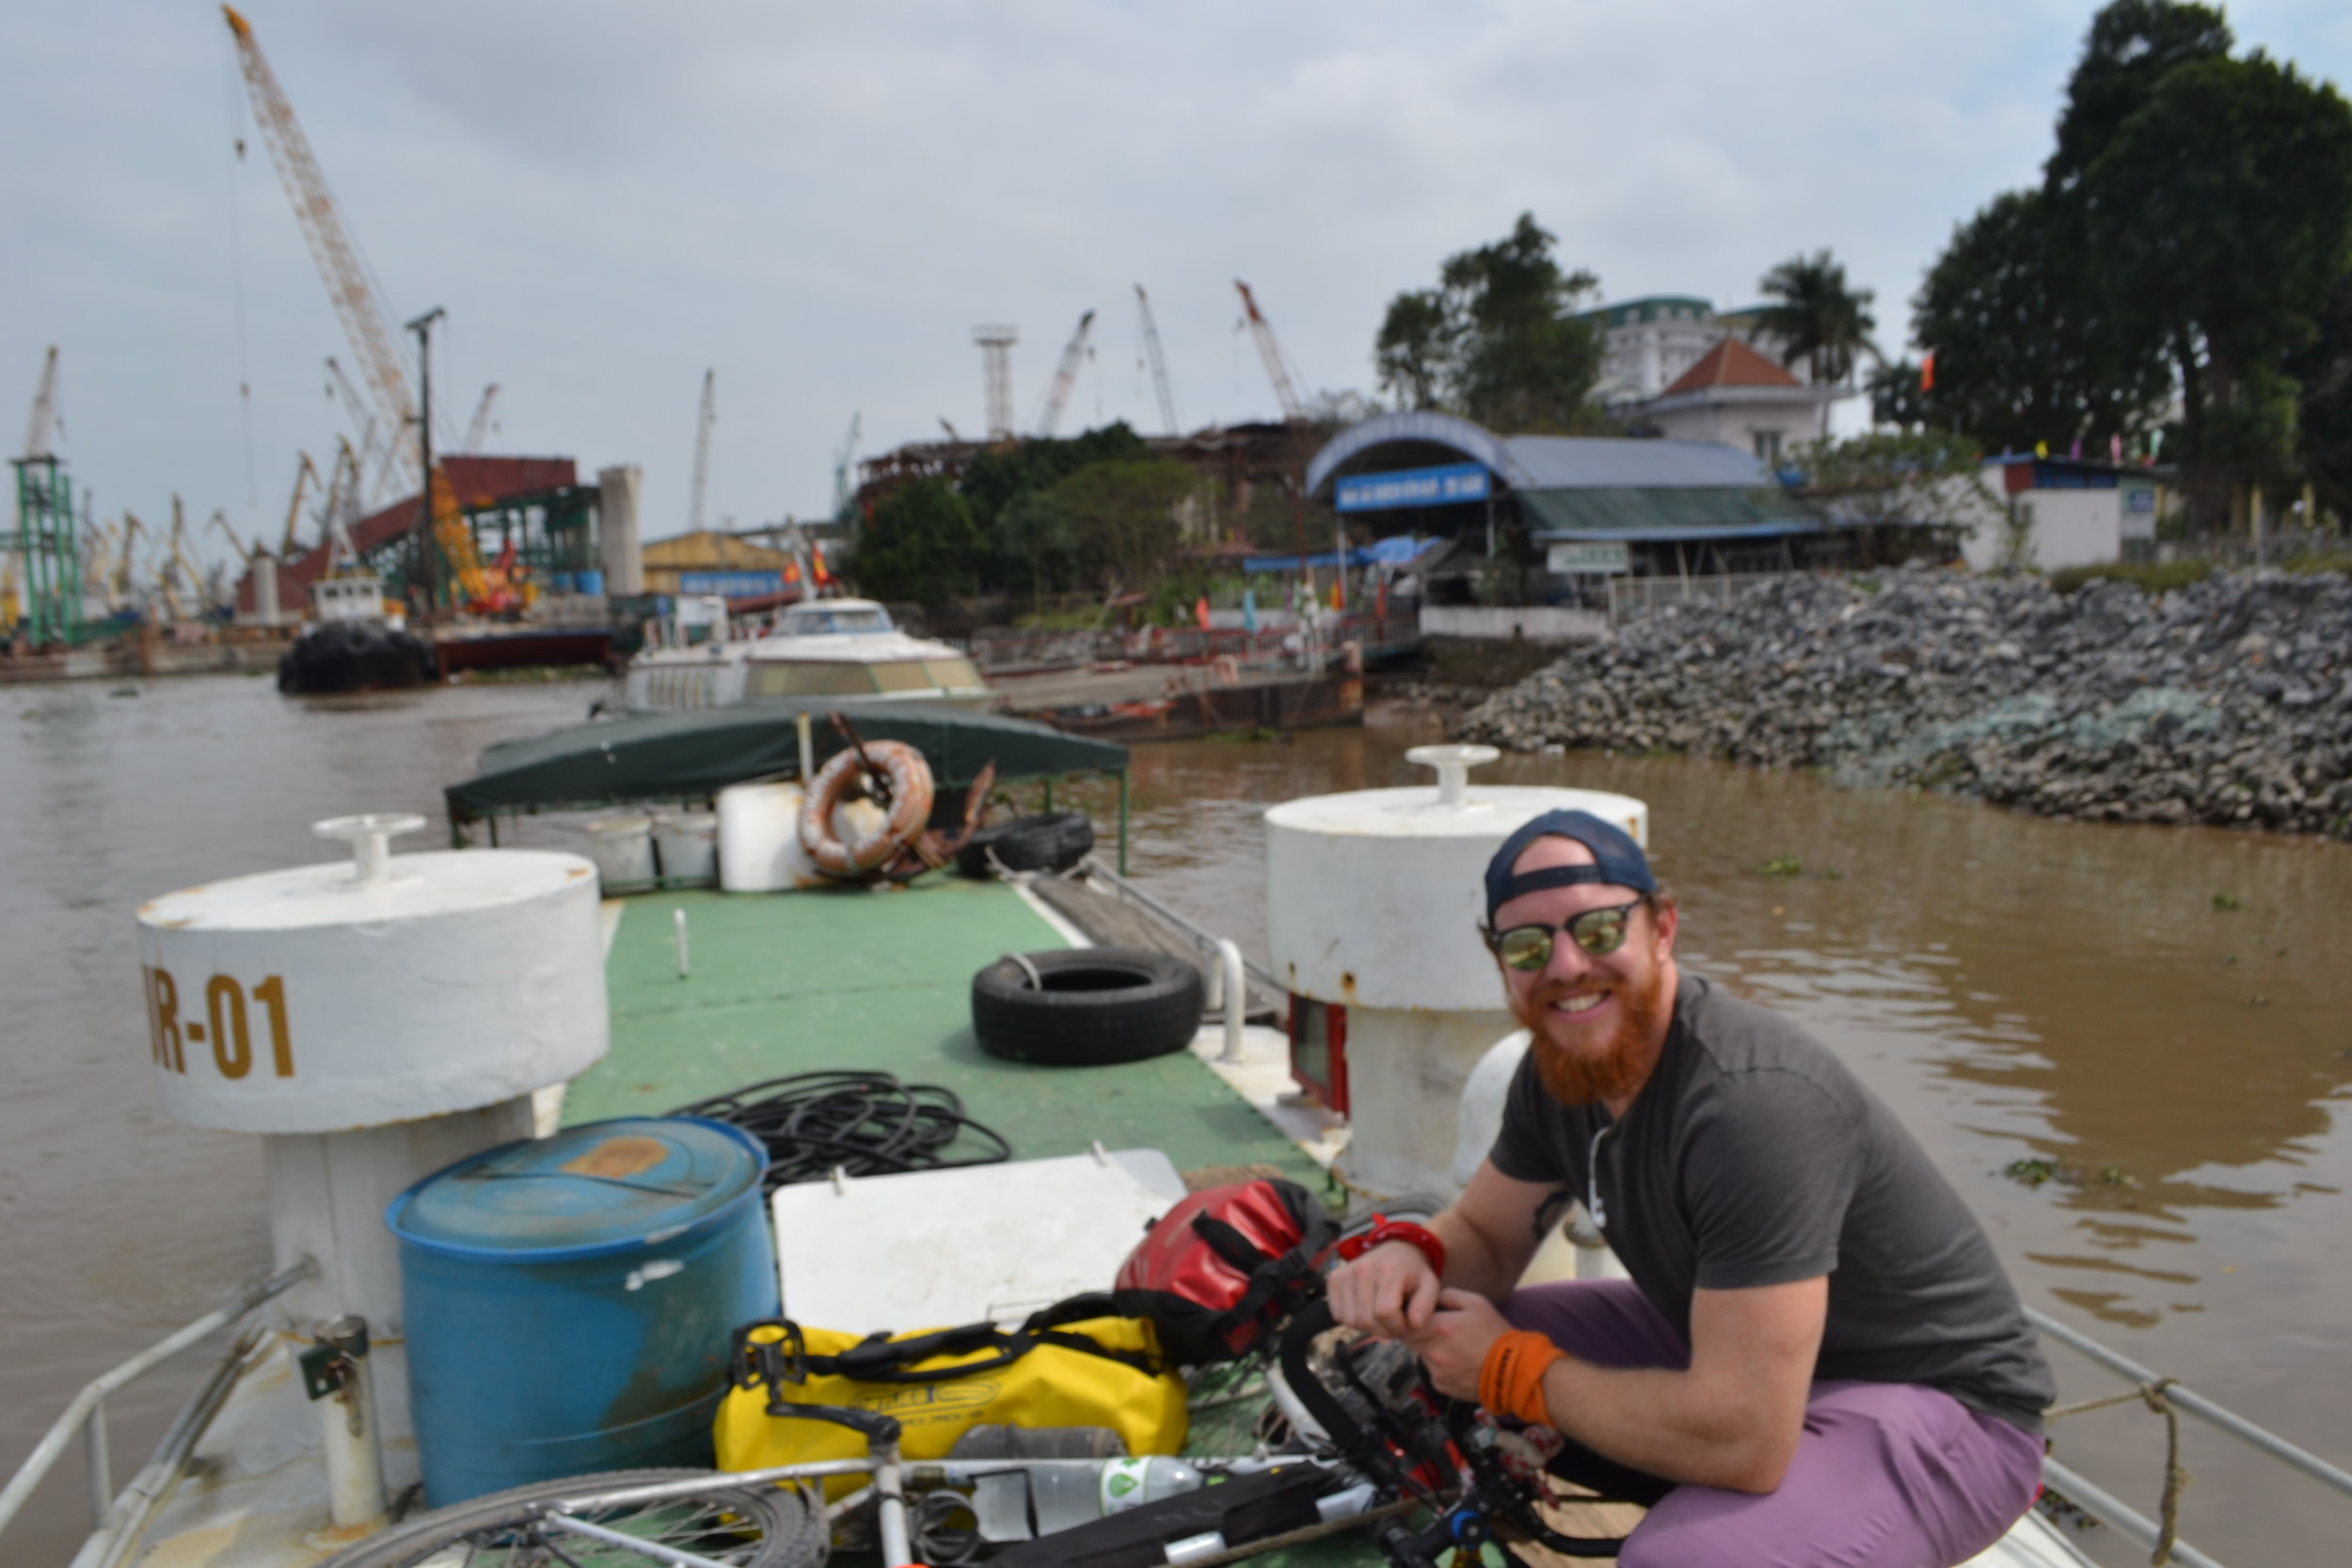 Tying my bike and bags to the top of the boat to Cat Ba Island.